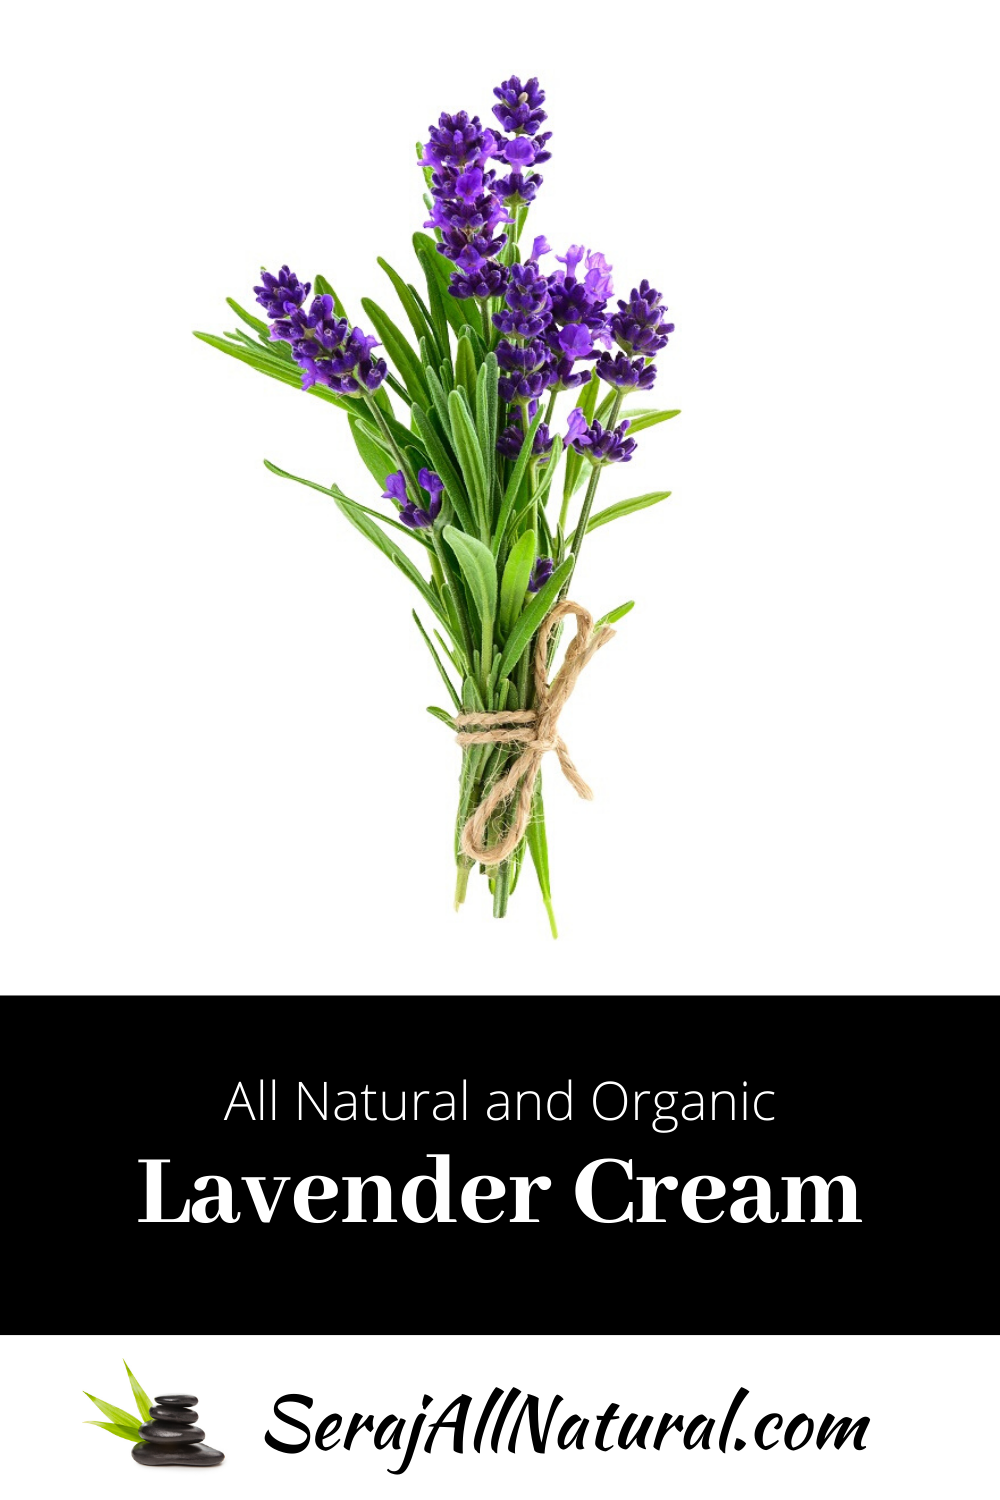 All Natural and Organic Lavender Cream from Seraj